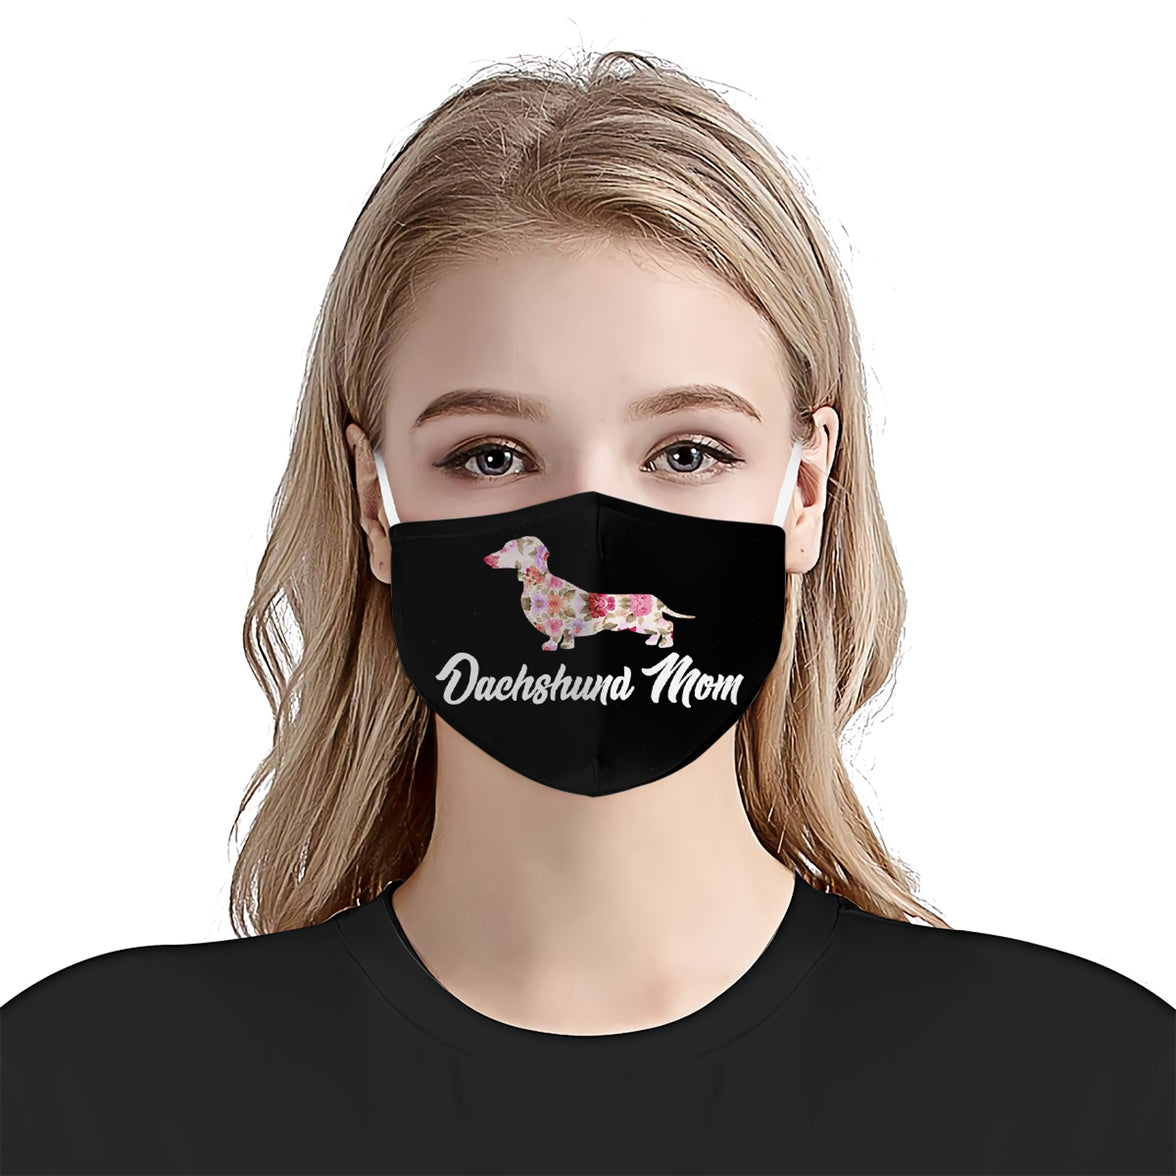 Dachshund Mom V2 EZ16 1008 Face Mask - Hyperfavor